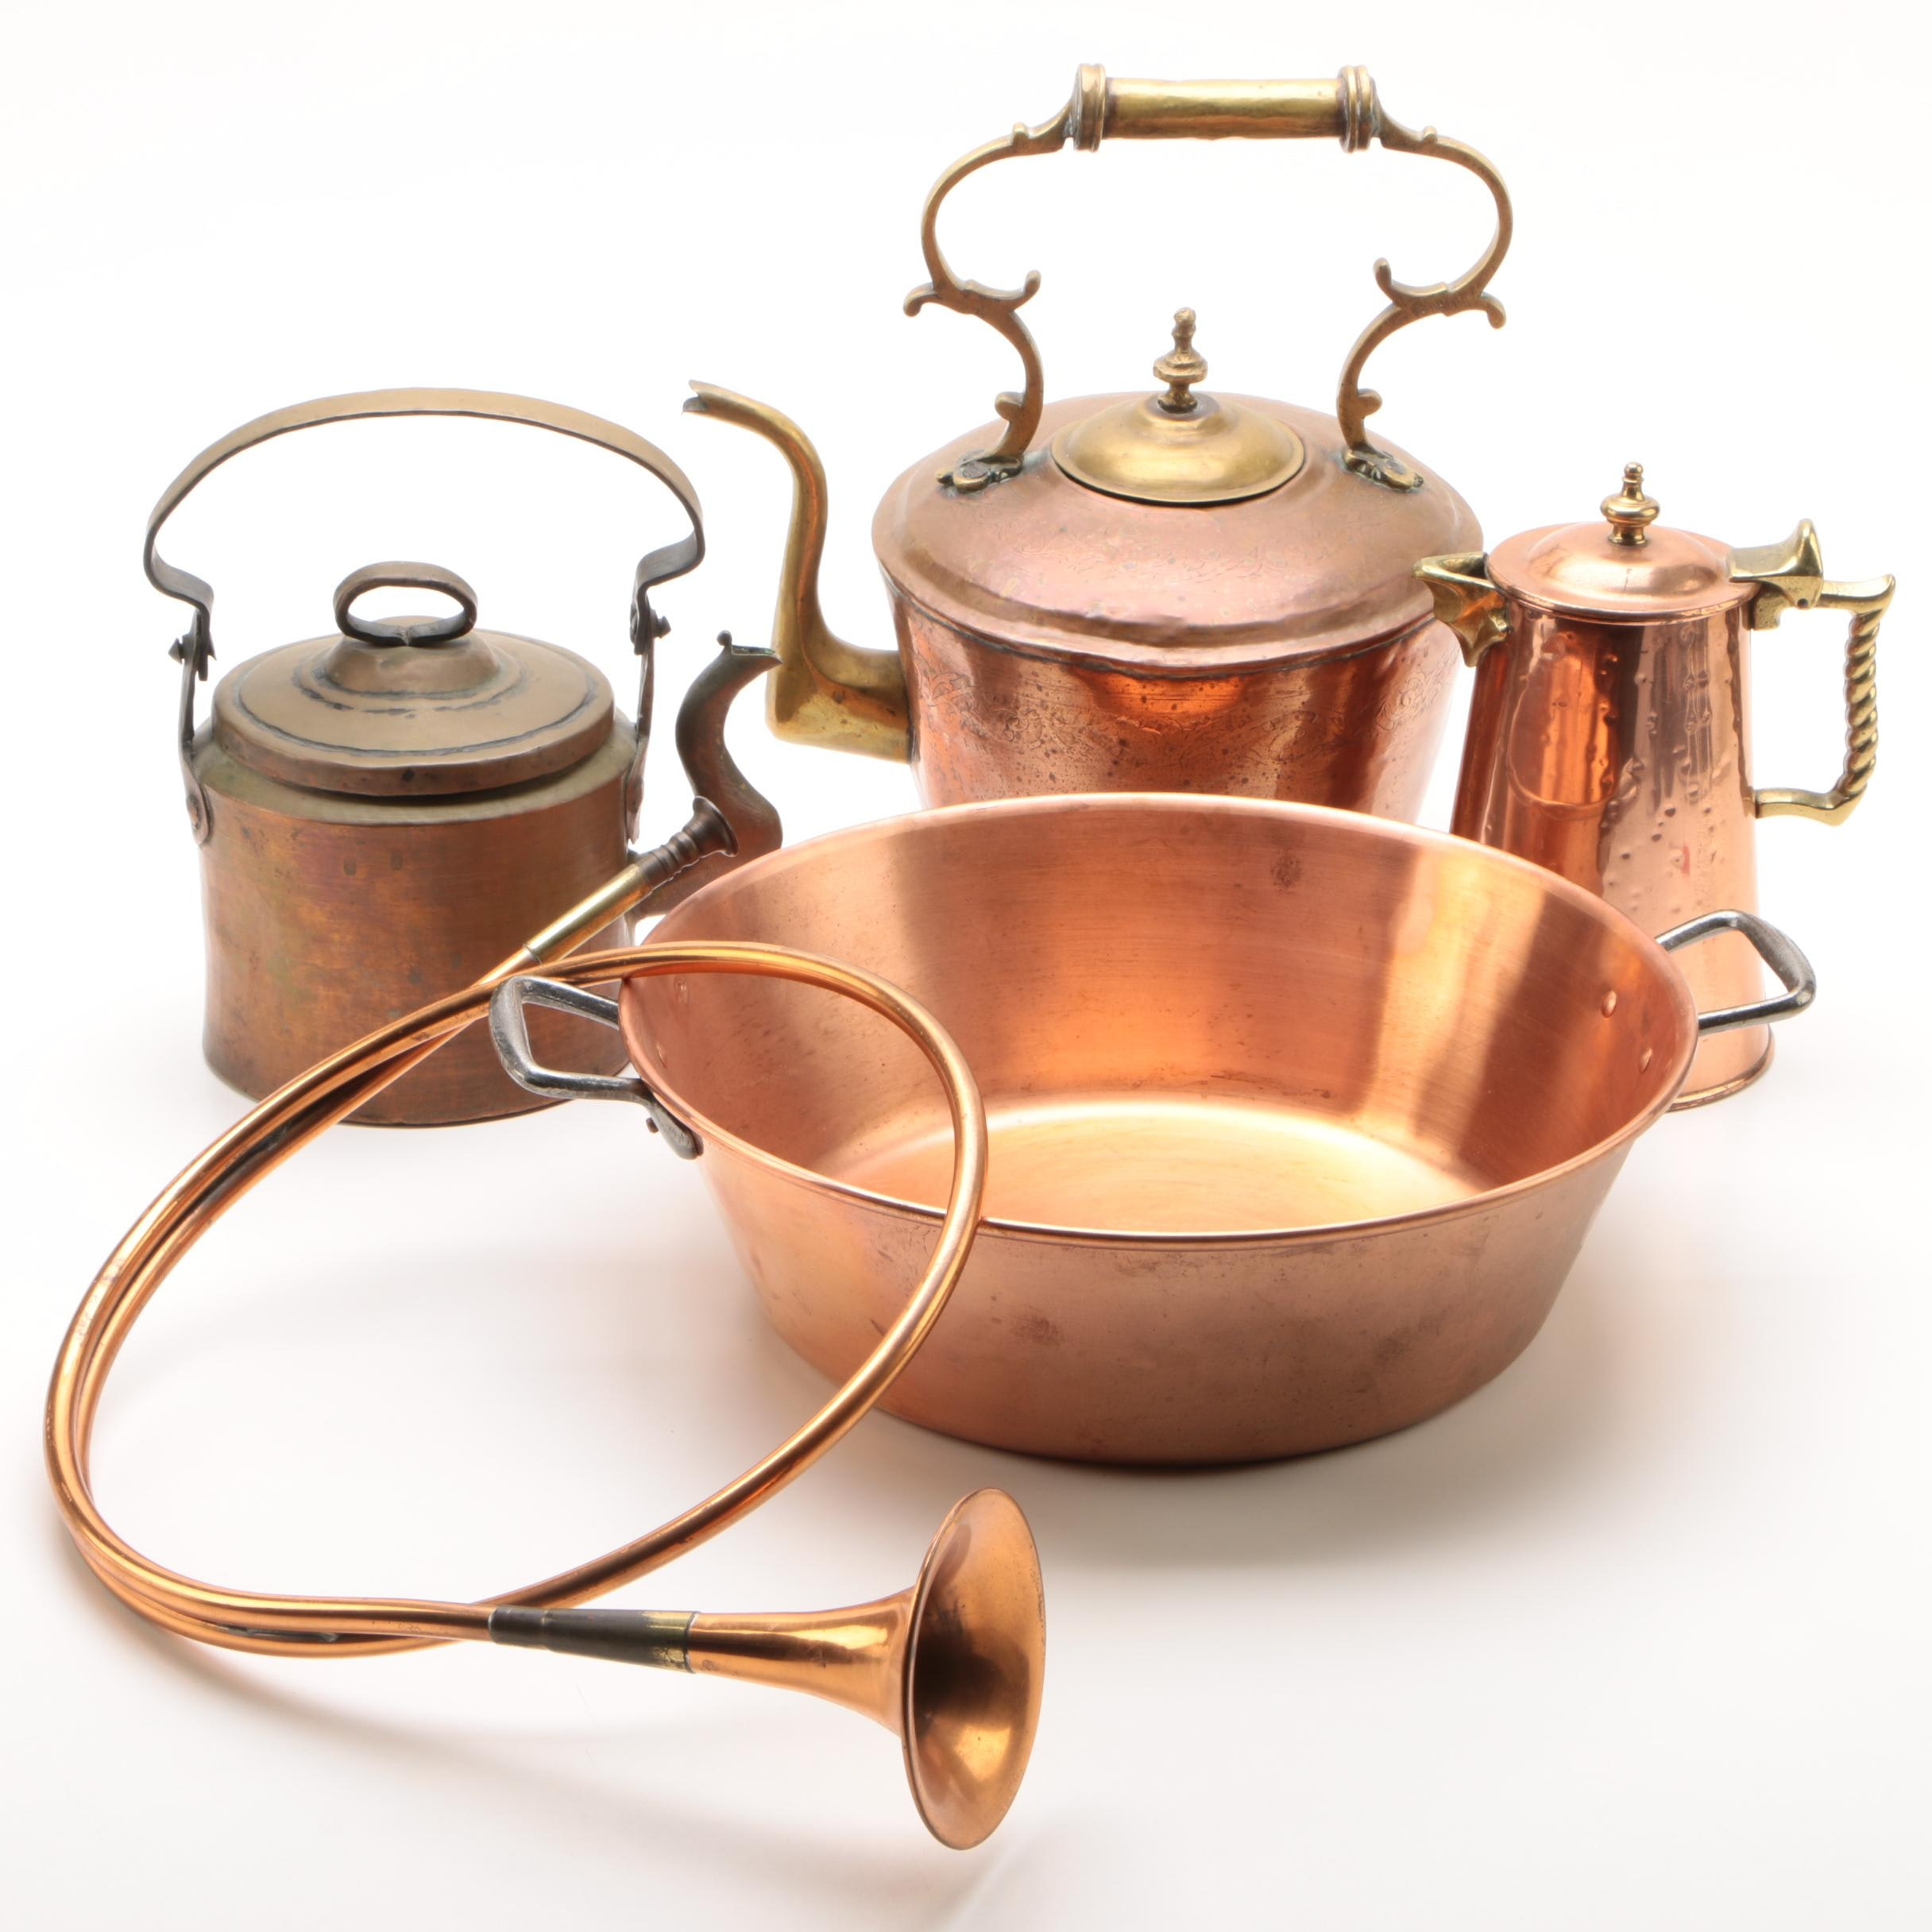 Brass and Copper Kettles with Basin and Hunting Horn